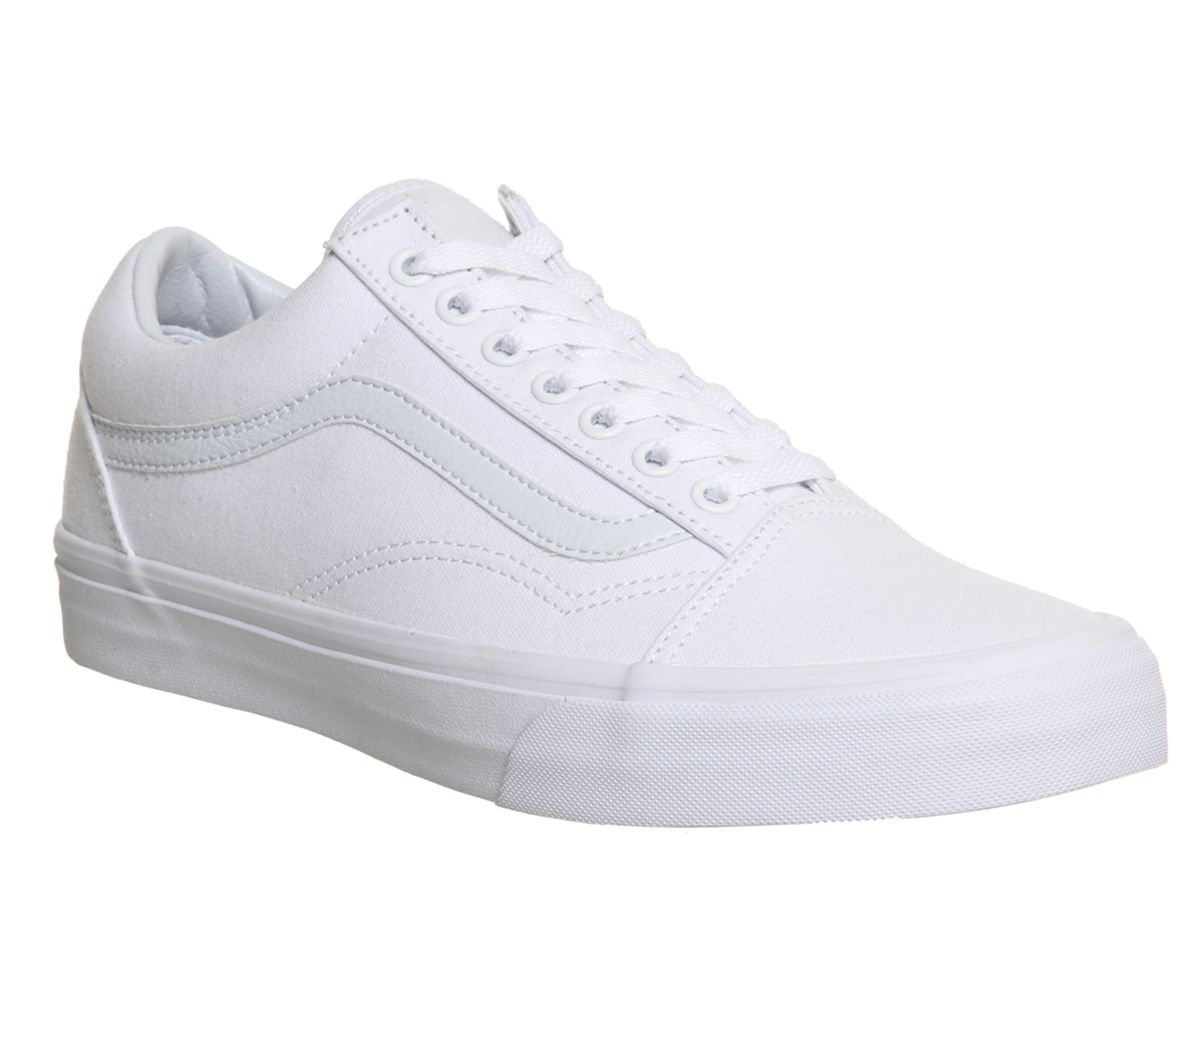 2c30126d5ab7 Vans Old Skool Canvas Trainers White Mono - Unisex Sports